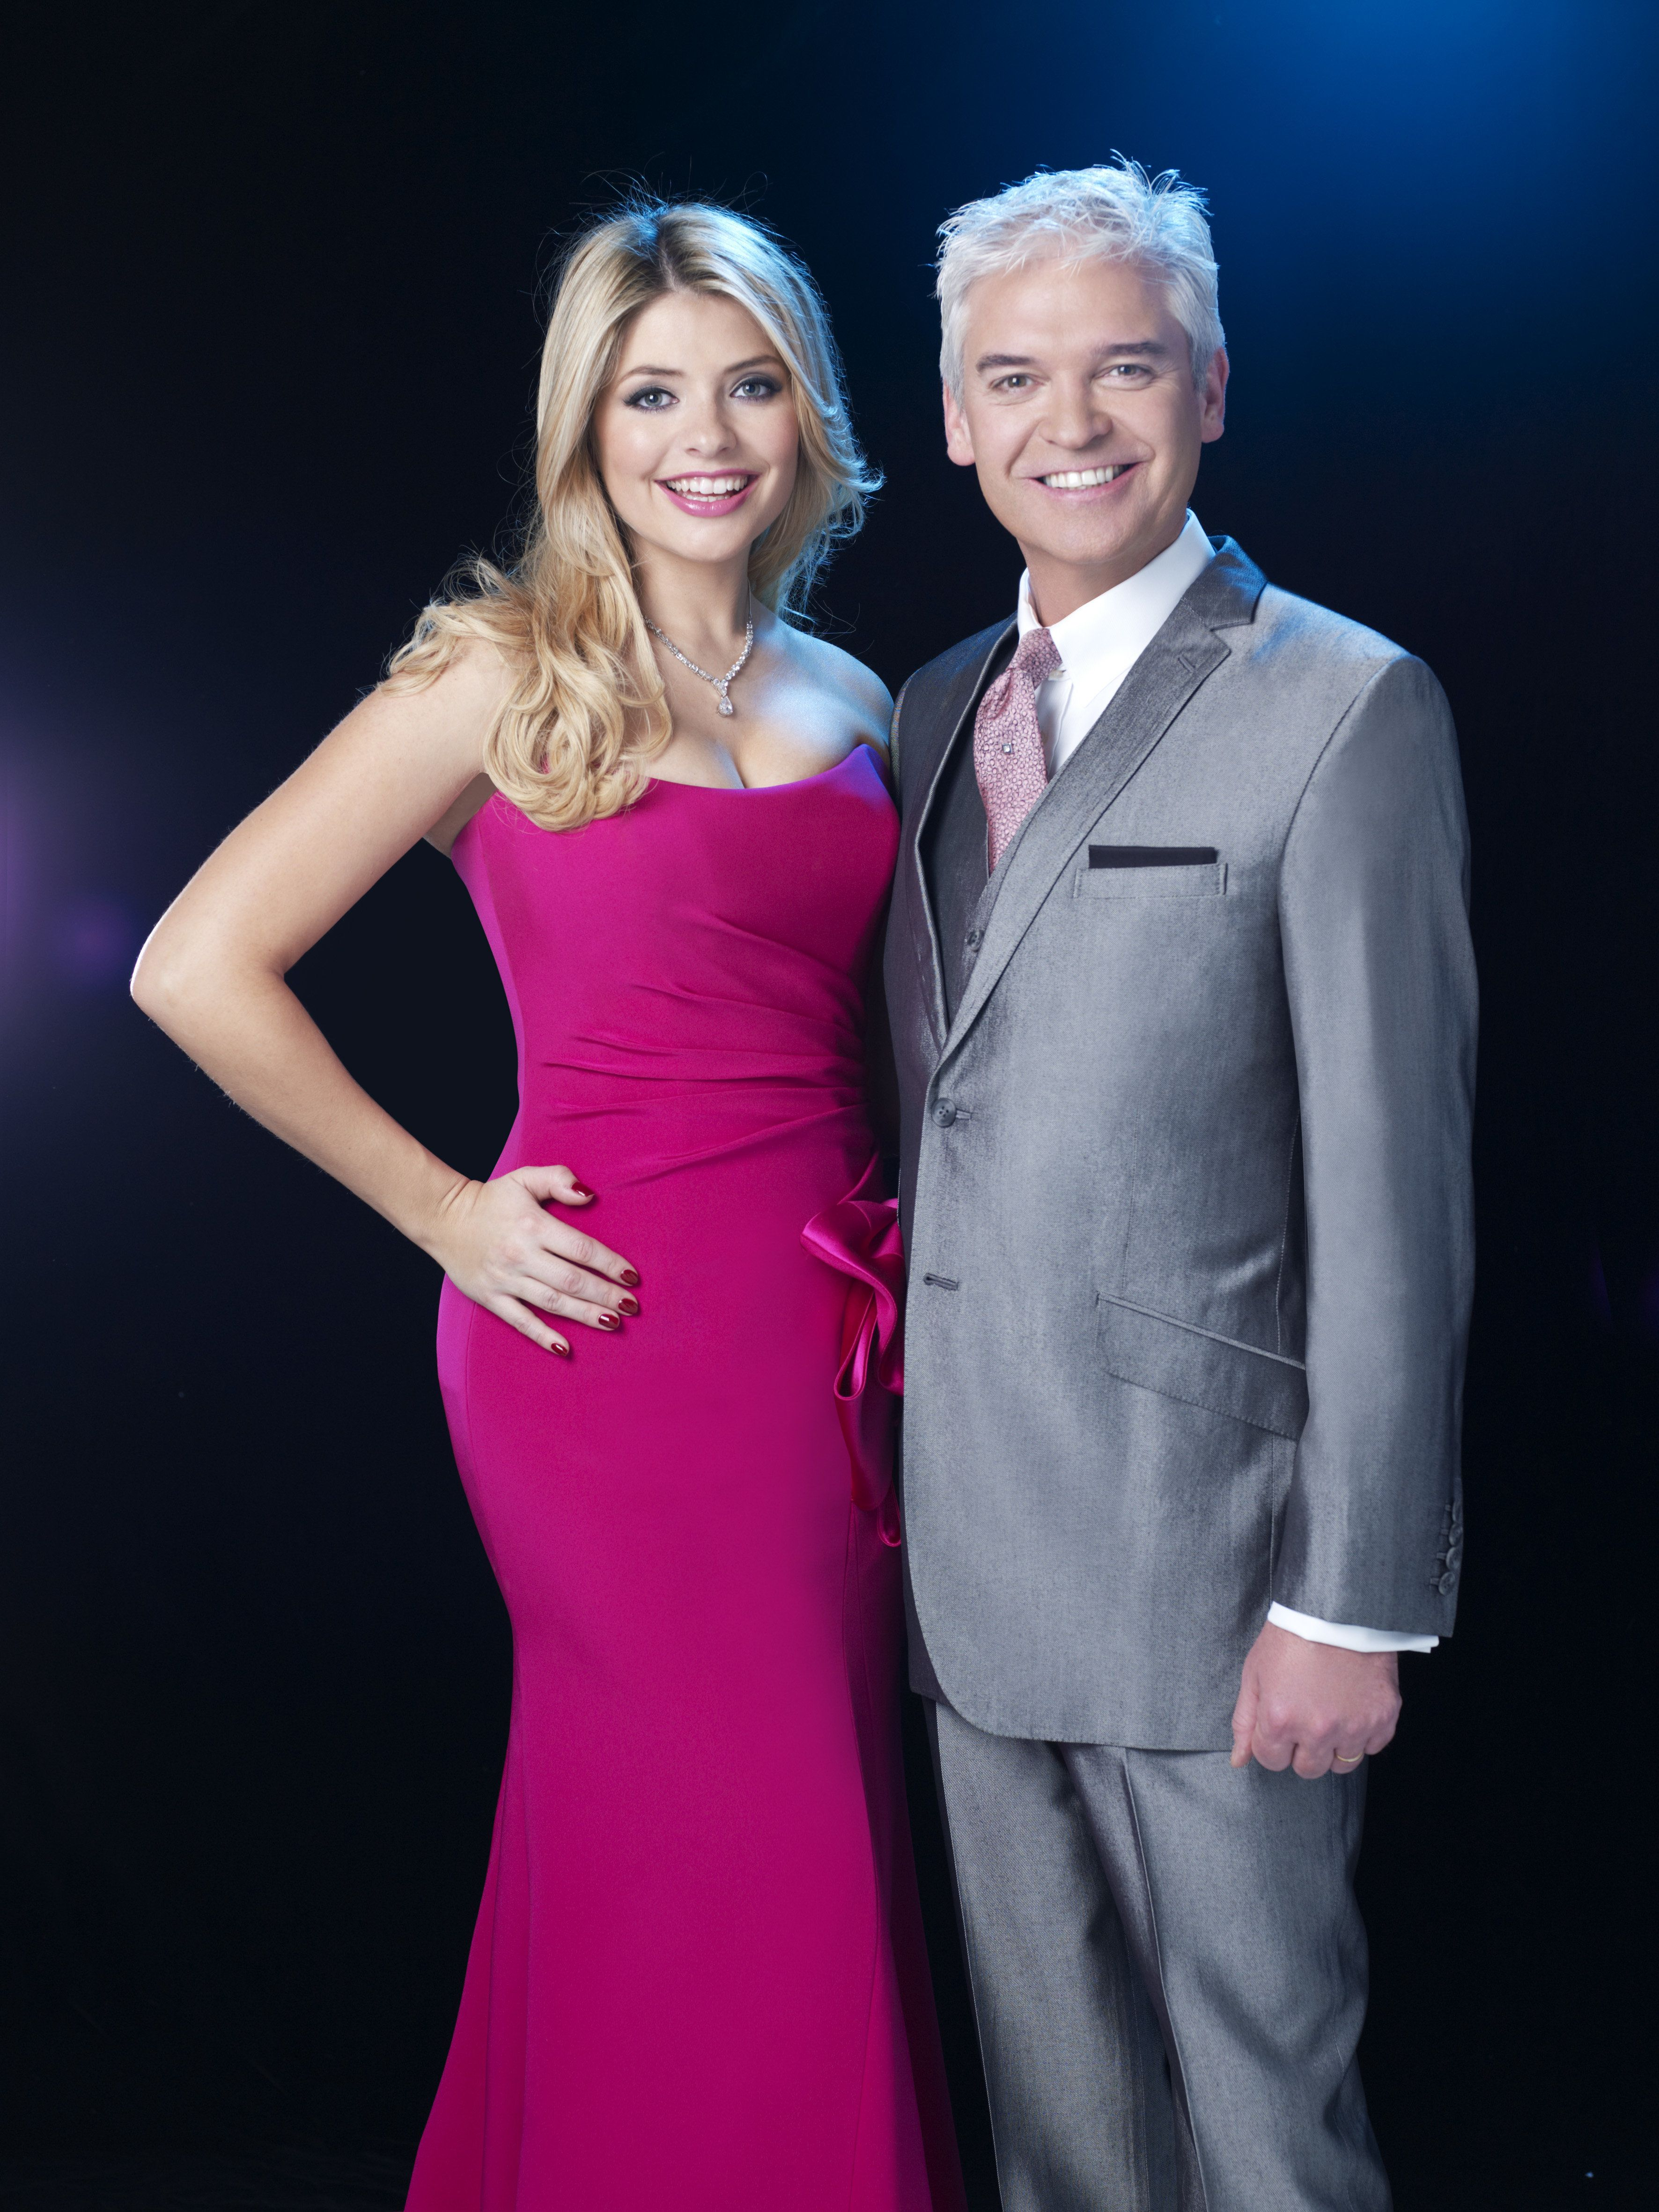 There Will Now Be Even More Of Holly Willoughby And Phillip Schofield On Your